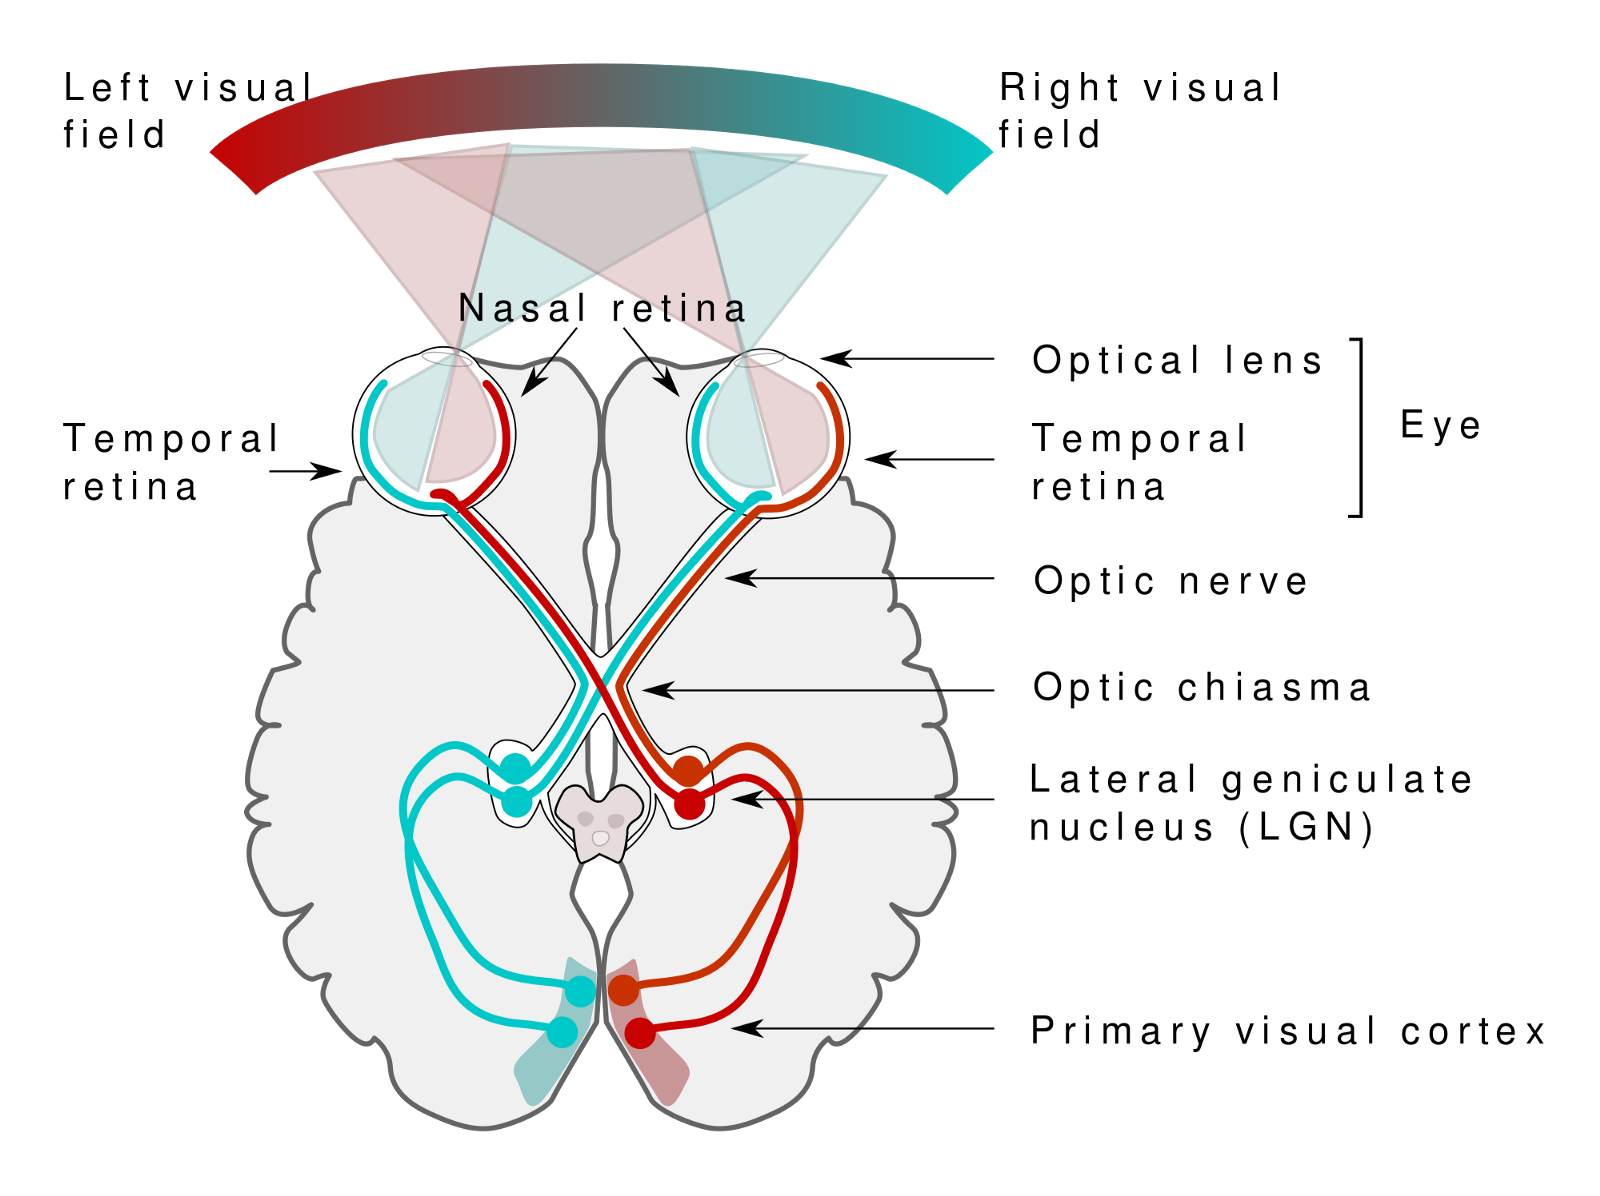 An Intuitive Guide To Convolutional Neural Networks Read More About Cat 5 Wiring Diagram Images Source Here Https Commonswikimediaorg Wiki Filehuman Visual Pathwaysvg